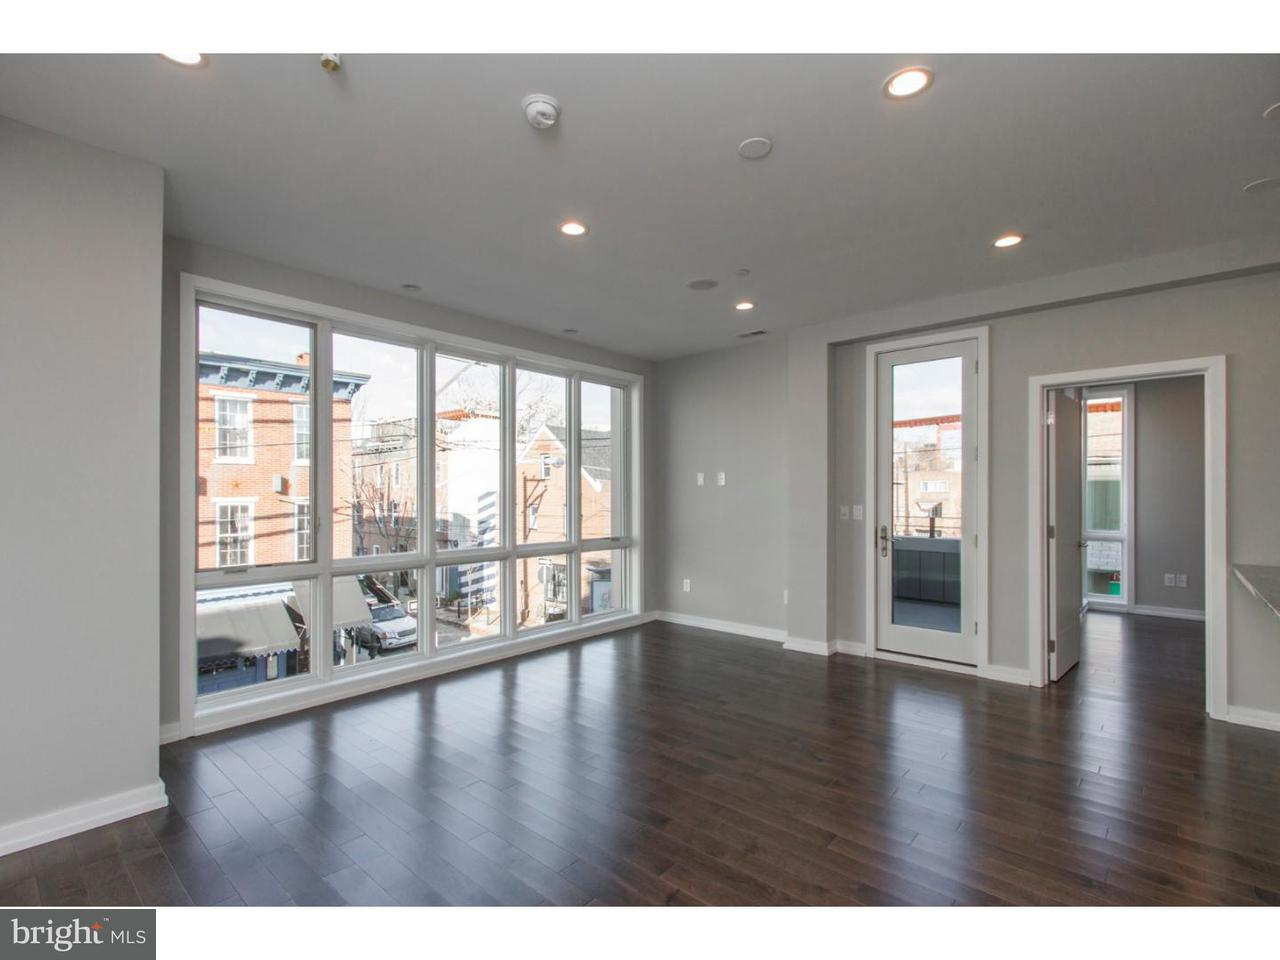 613 S 7TH Philadelphia, PA 19147